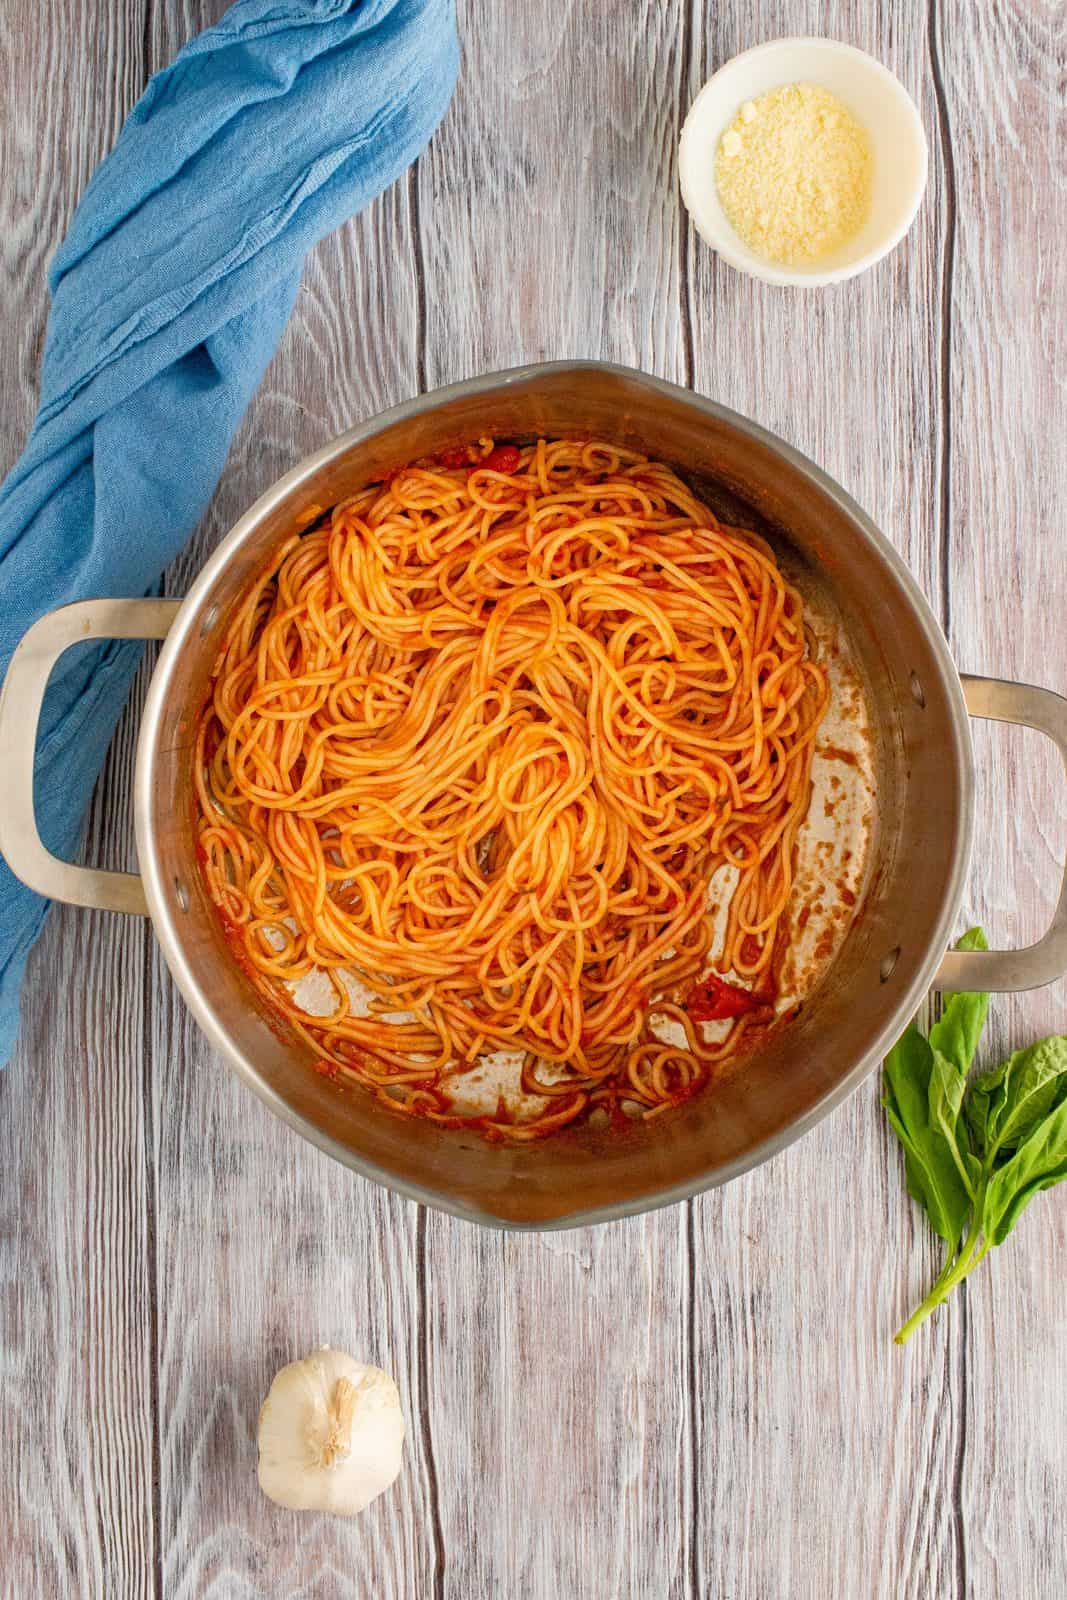 Spaghetti and sauce mixed together in pot.